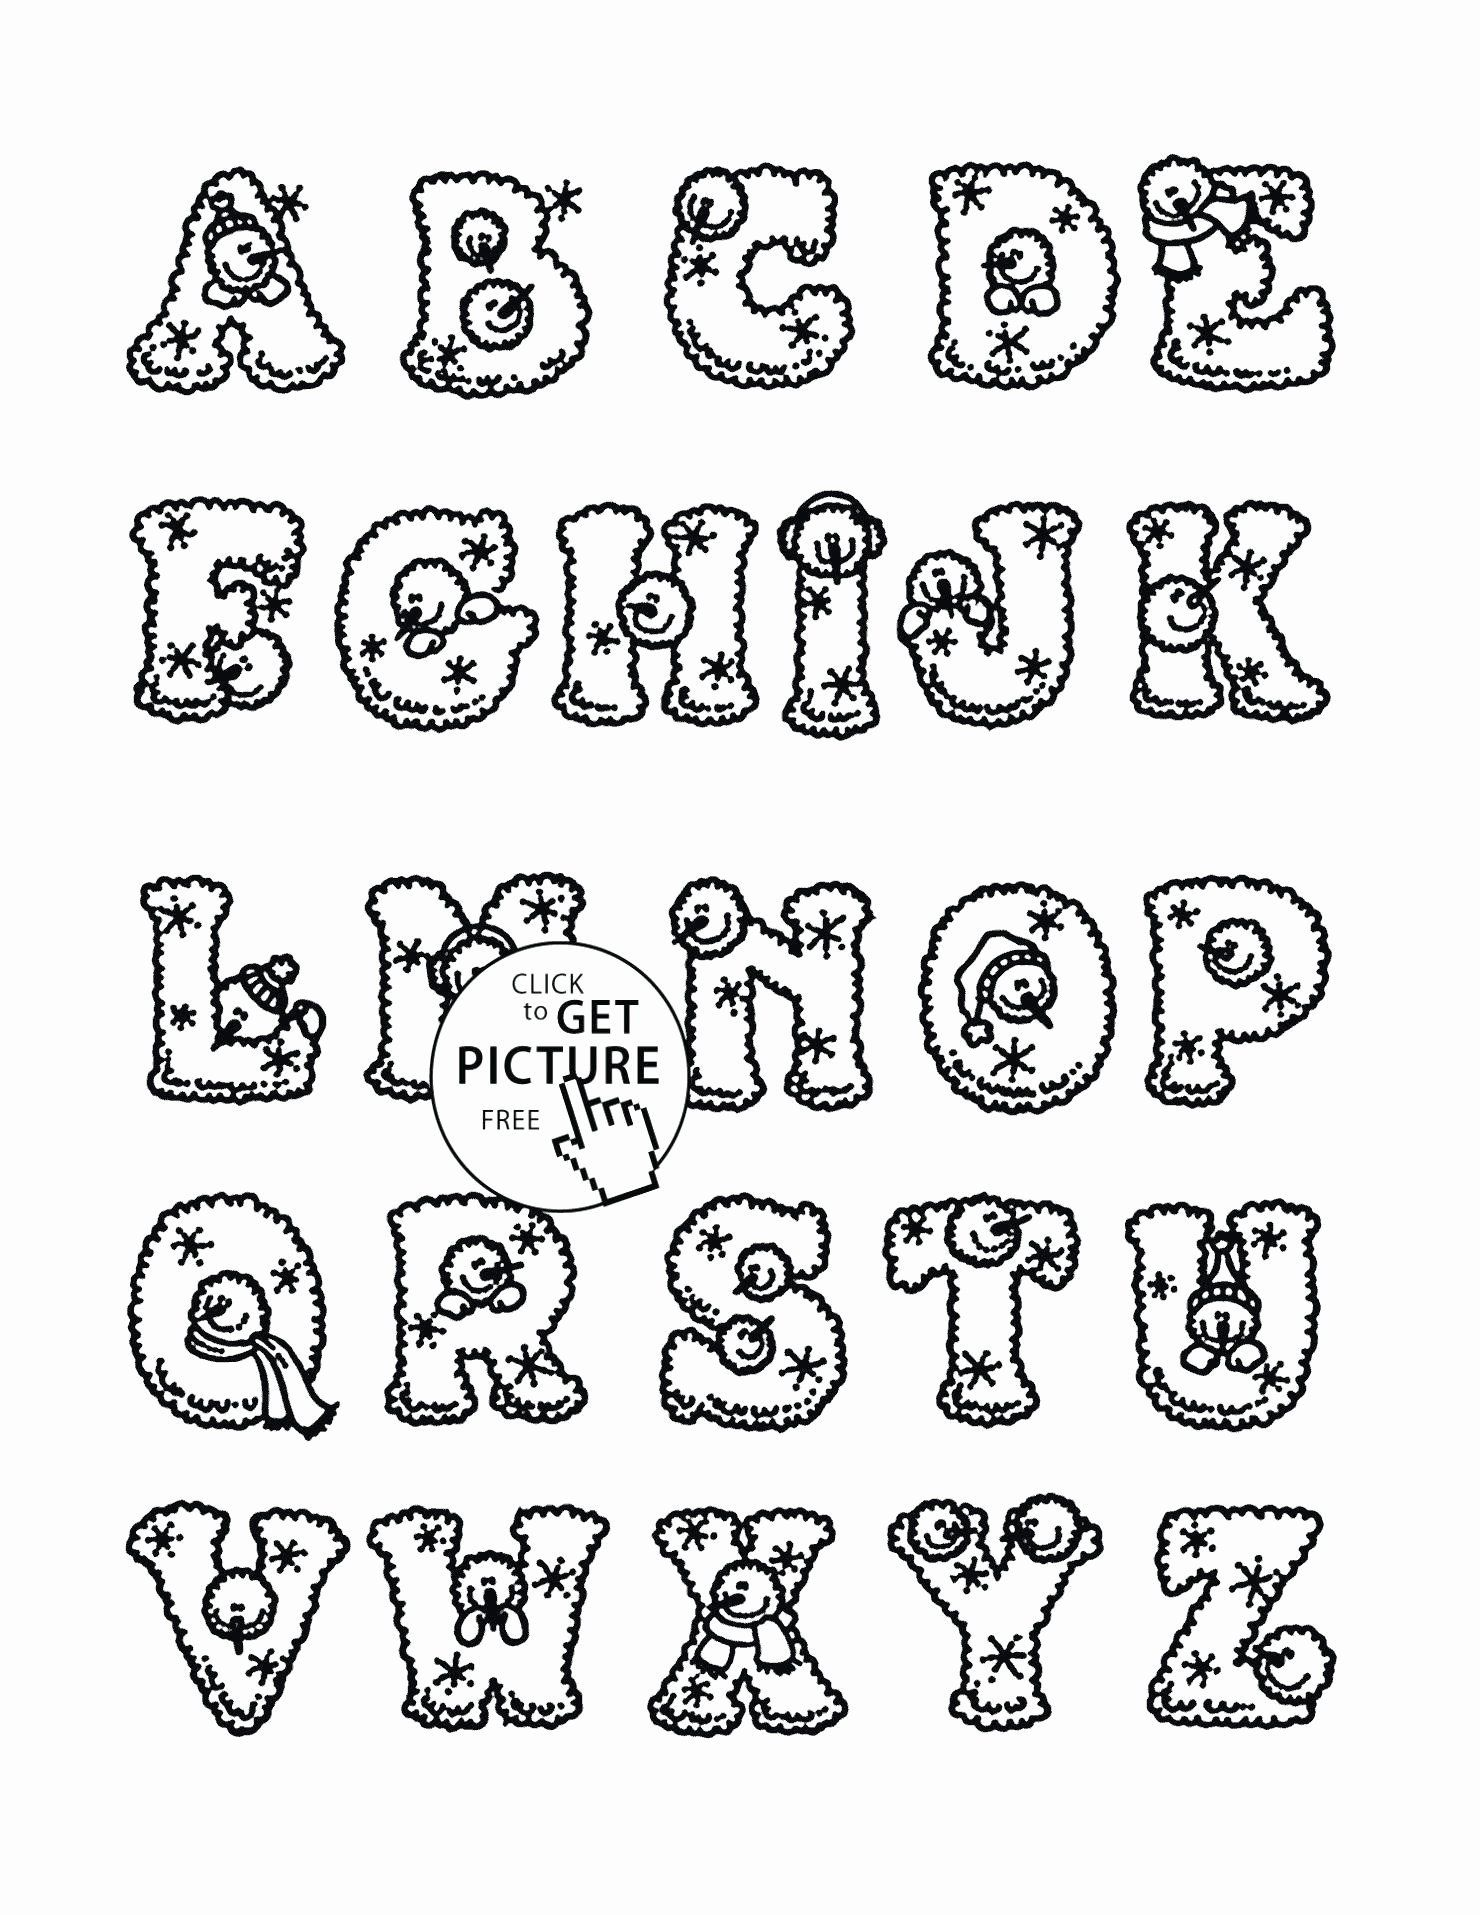 Alphabet Coloring Pages Preschool Elegant Coloring Page Letters Regionpaper Abc Coloring Pages Alphabet Coloring Pages Letter A Coloring Pages